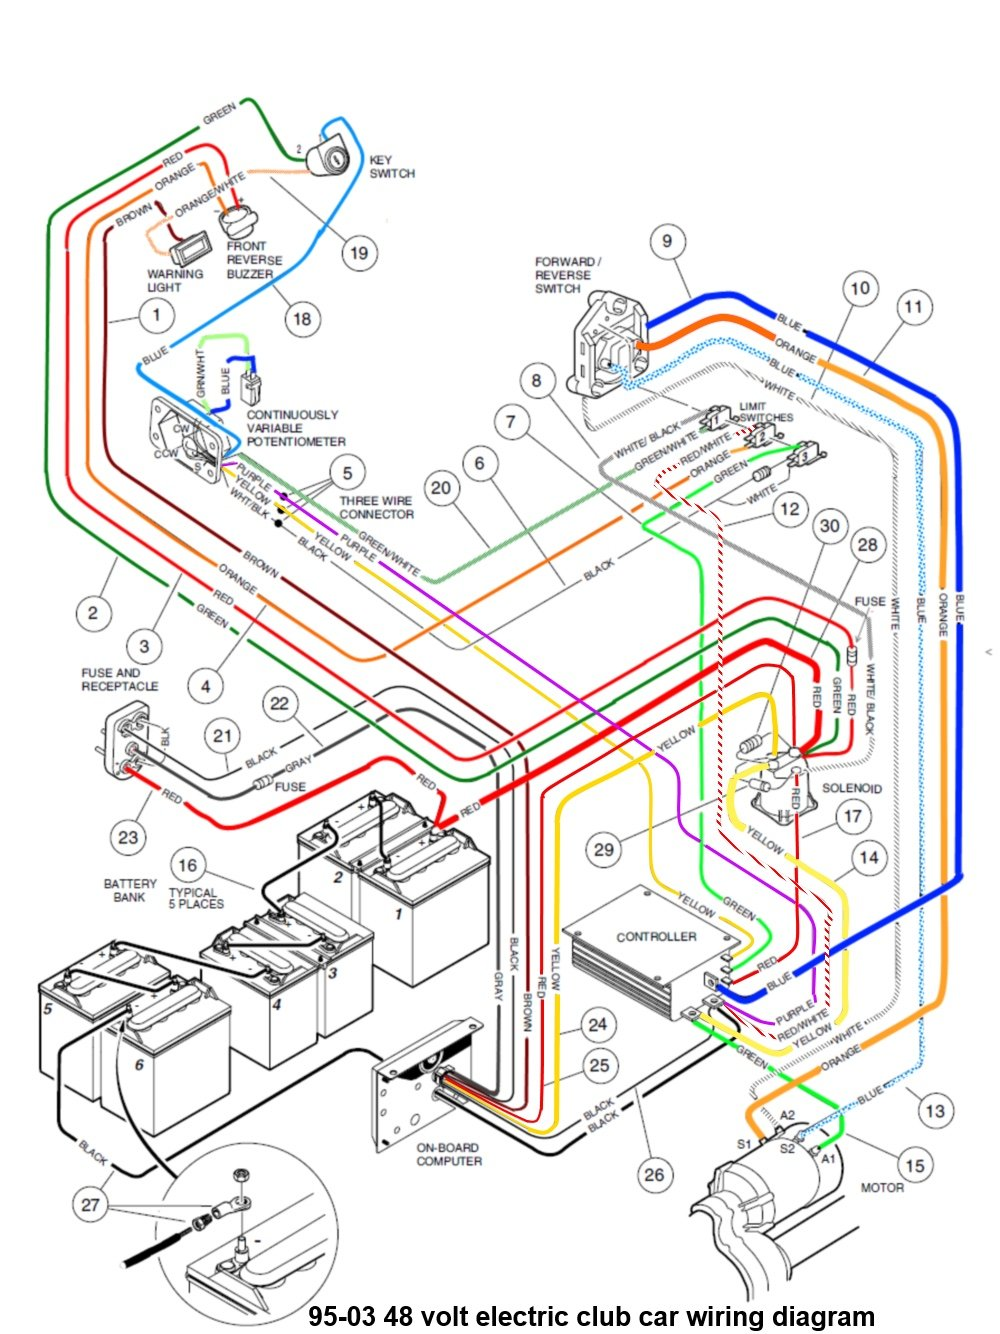 club car wiring diagram 48 volt pdf 2004 club car wiring diagram 48 volt